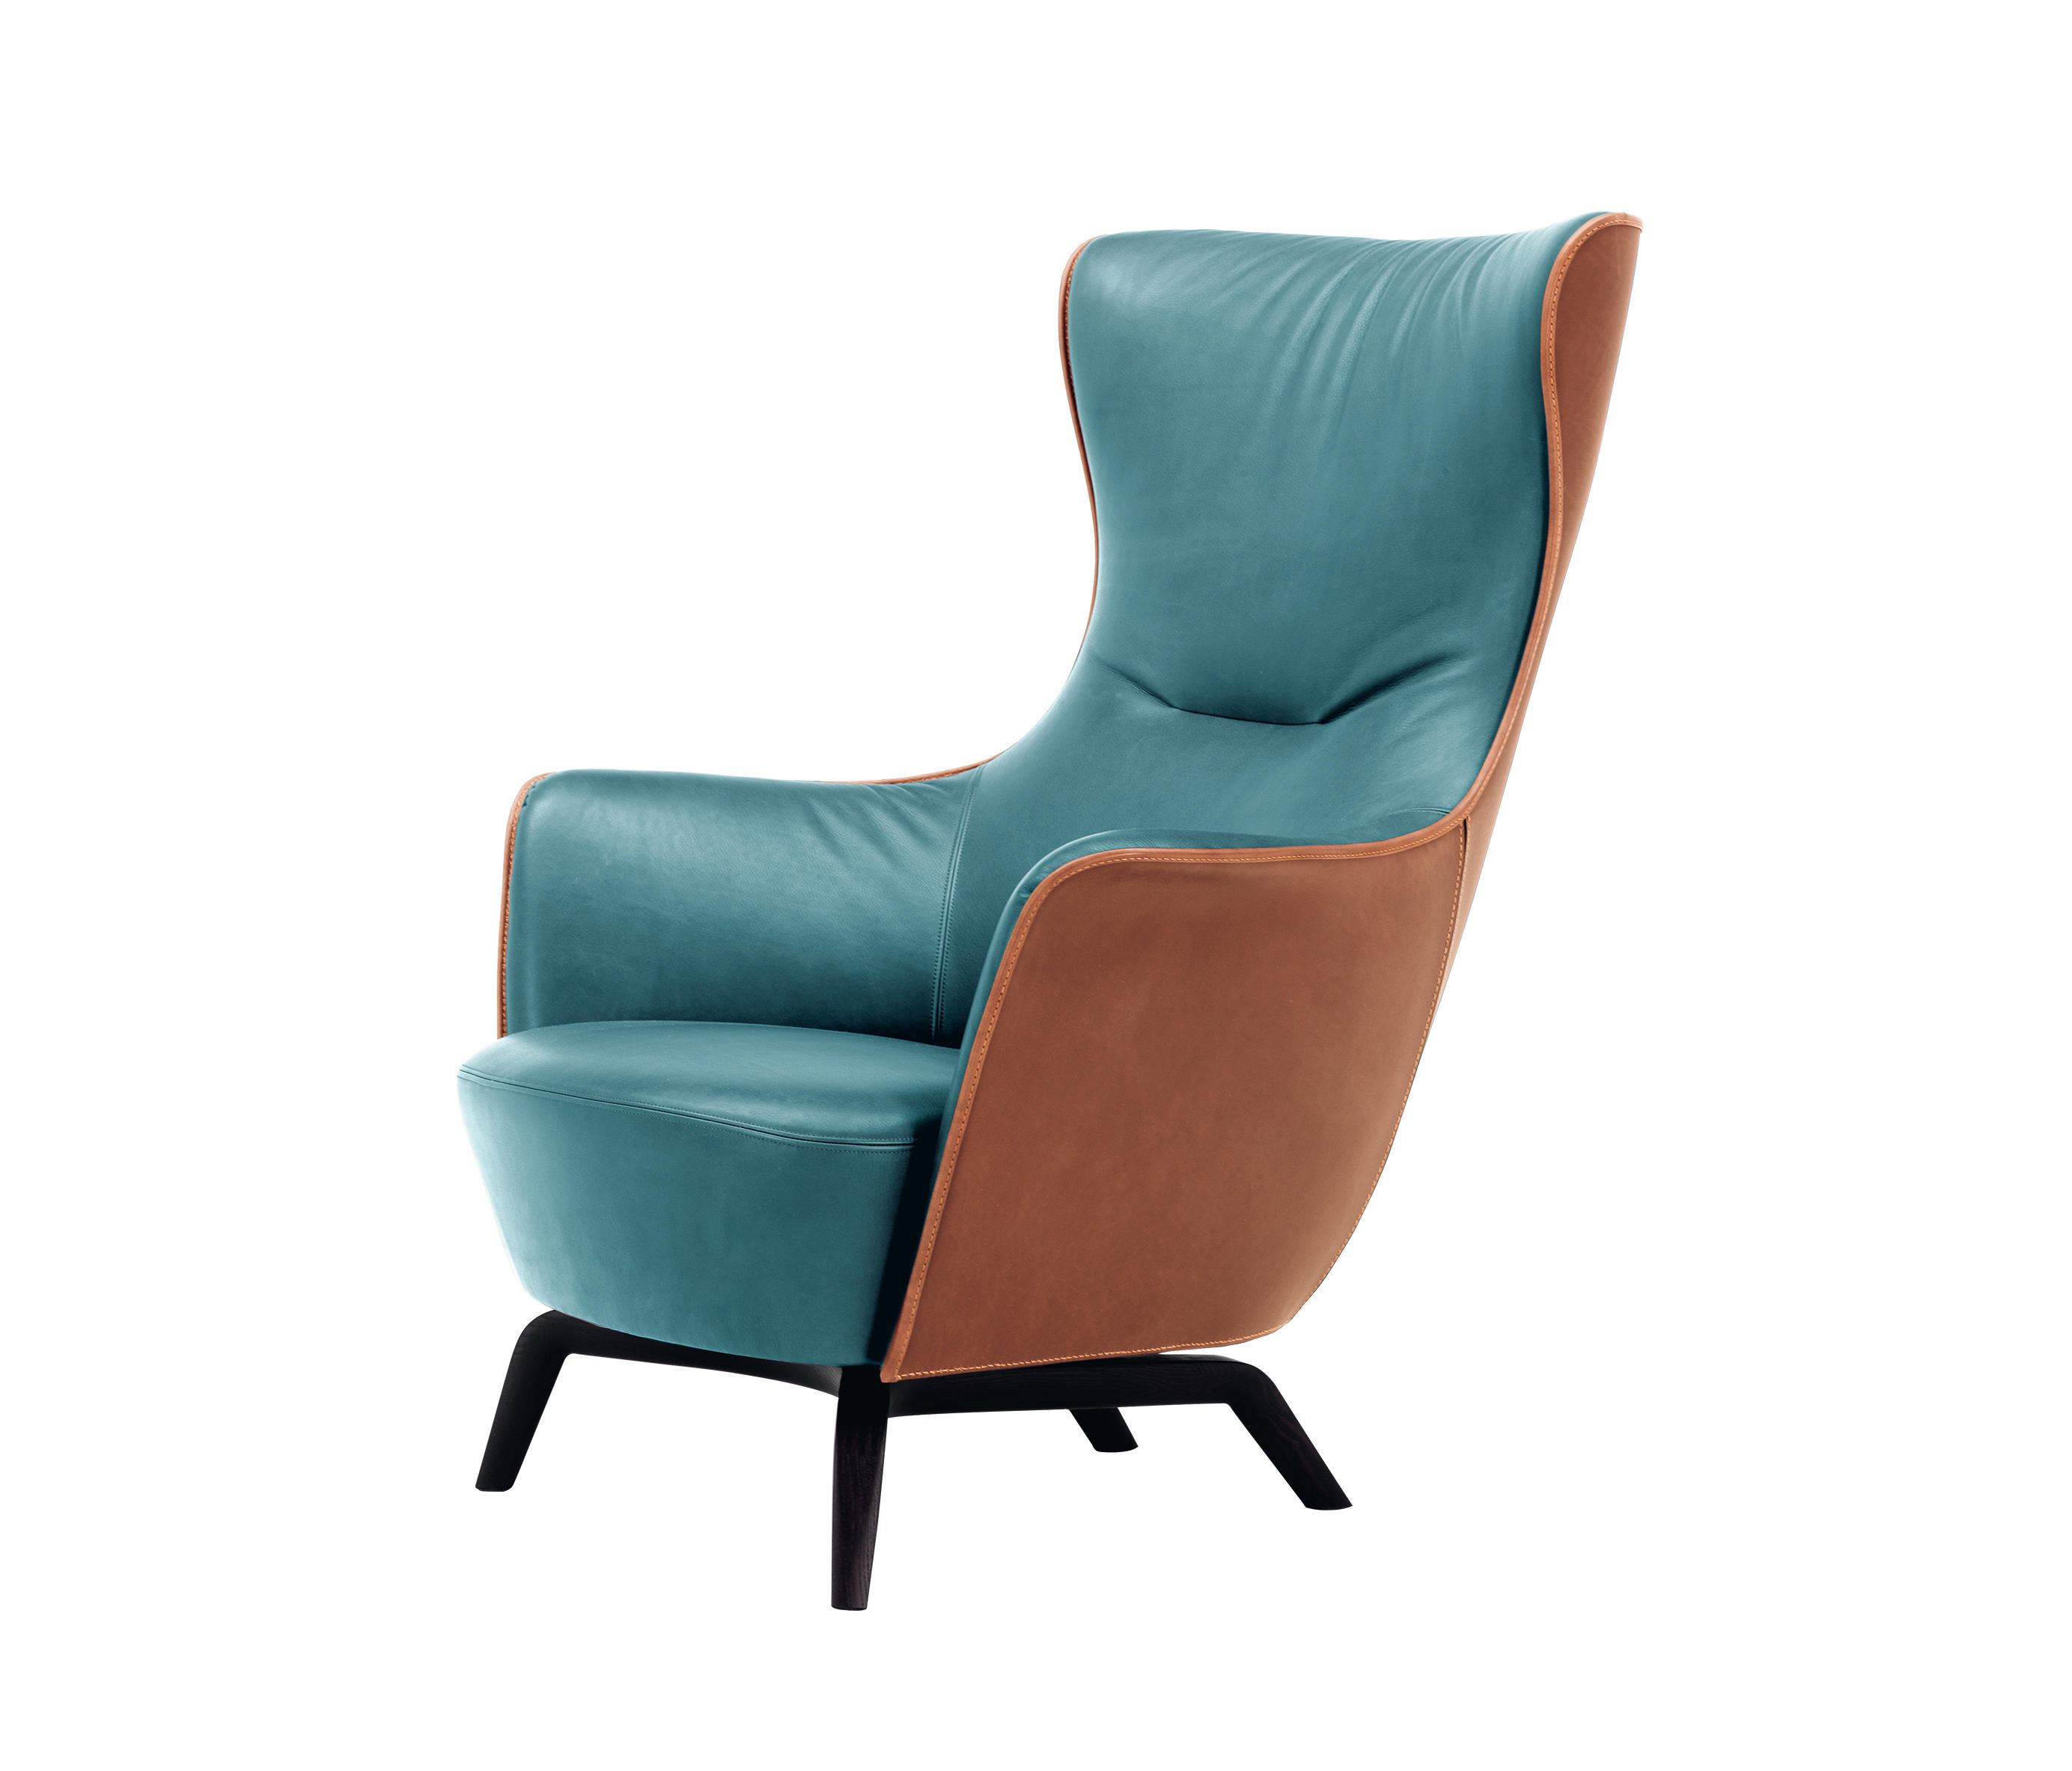 Frau Poltrone.Mamy Blue Armchair Designer Furniture Architonic